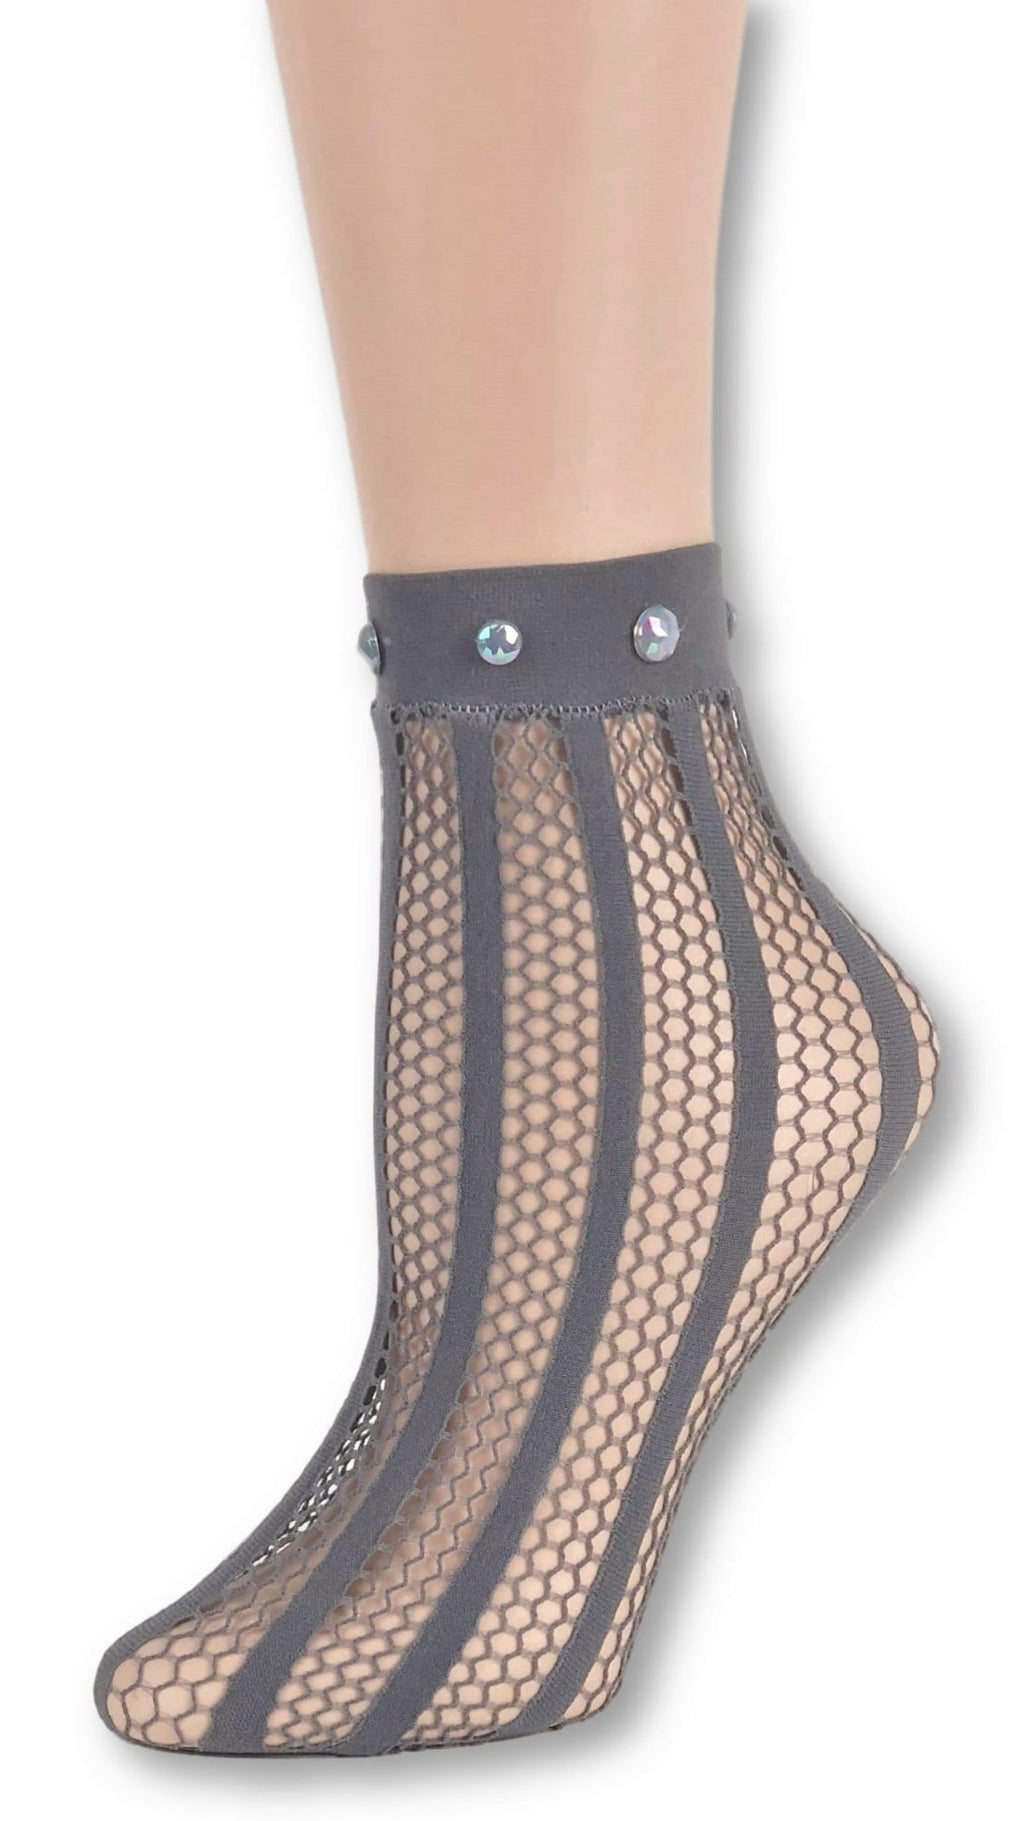 Striped Grey Custom Mesh Socks with beads